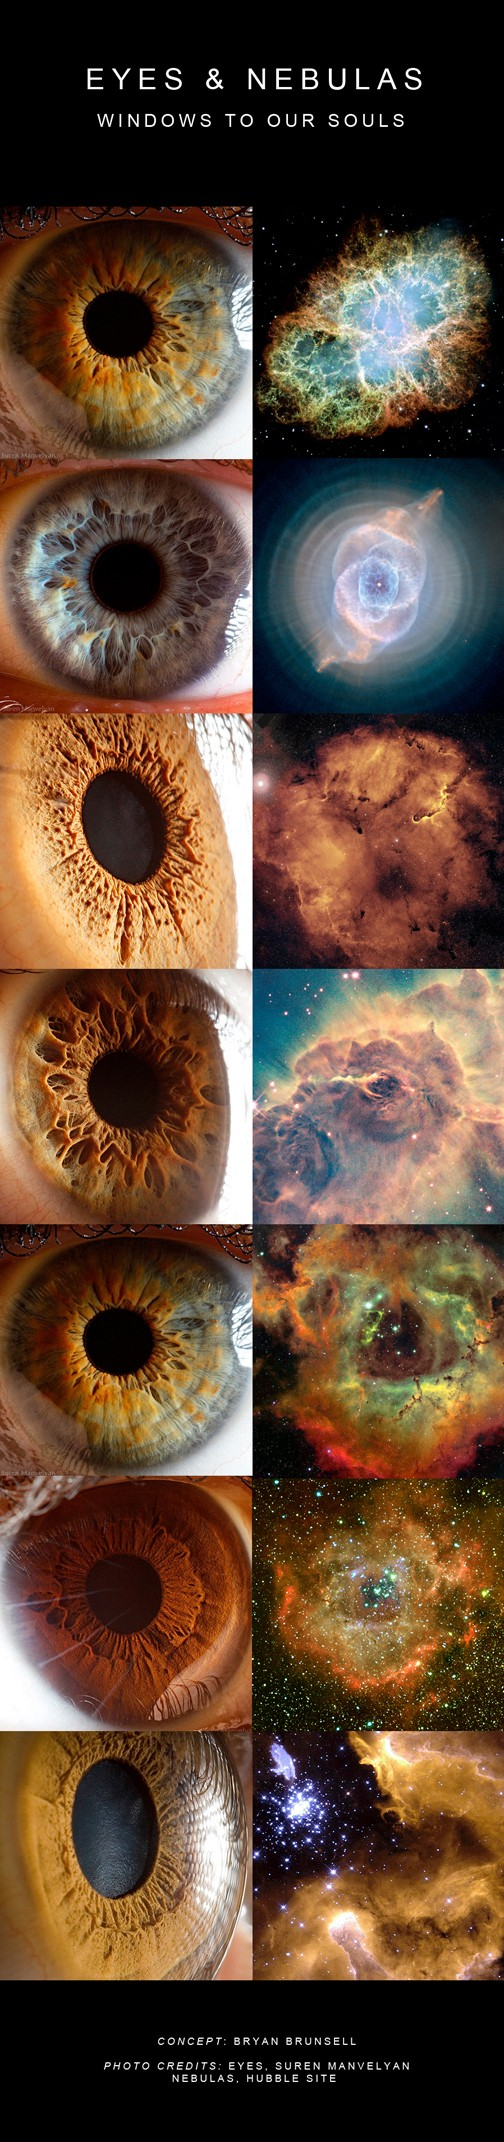 Eyes & Nebulas  main